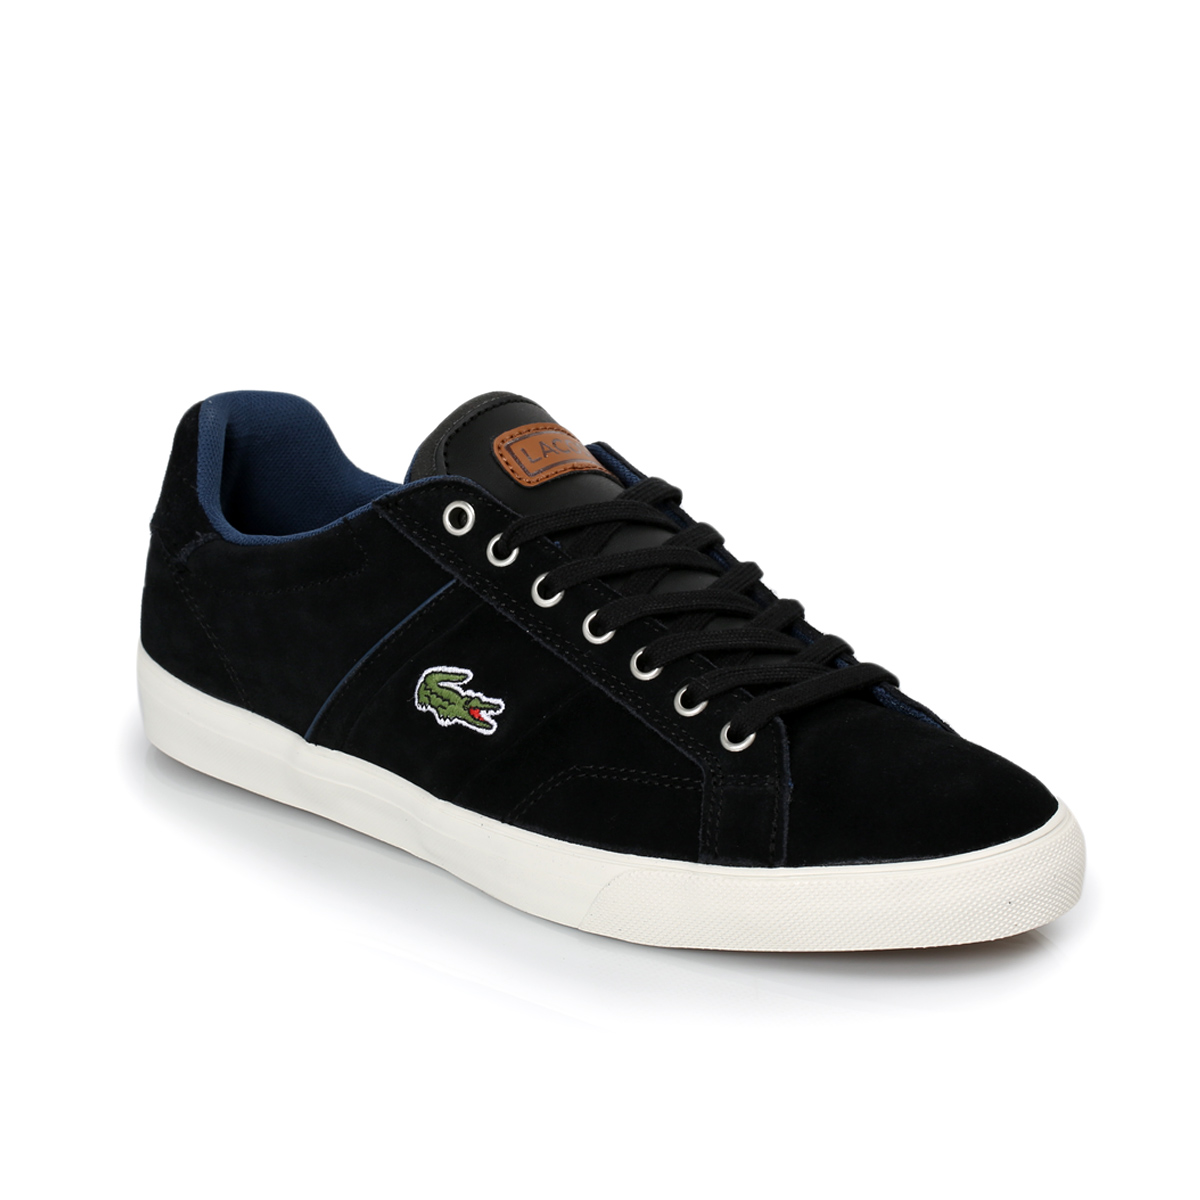 Lacoste Canvas Shoes Uk